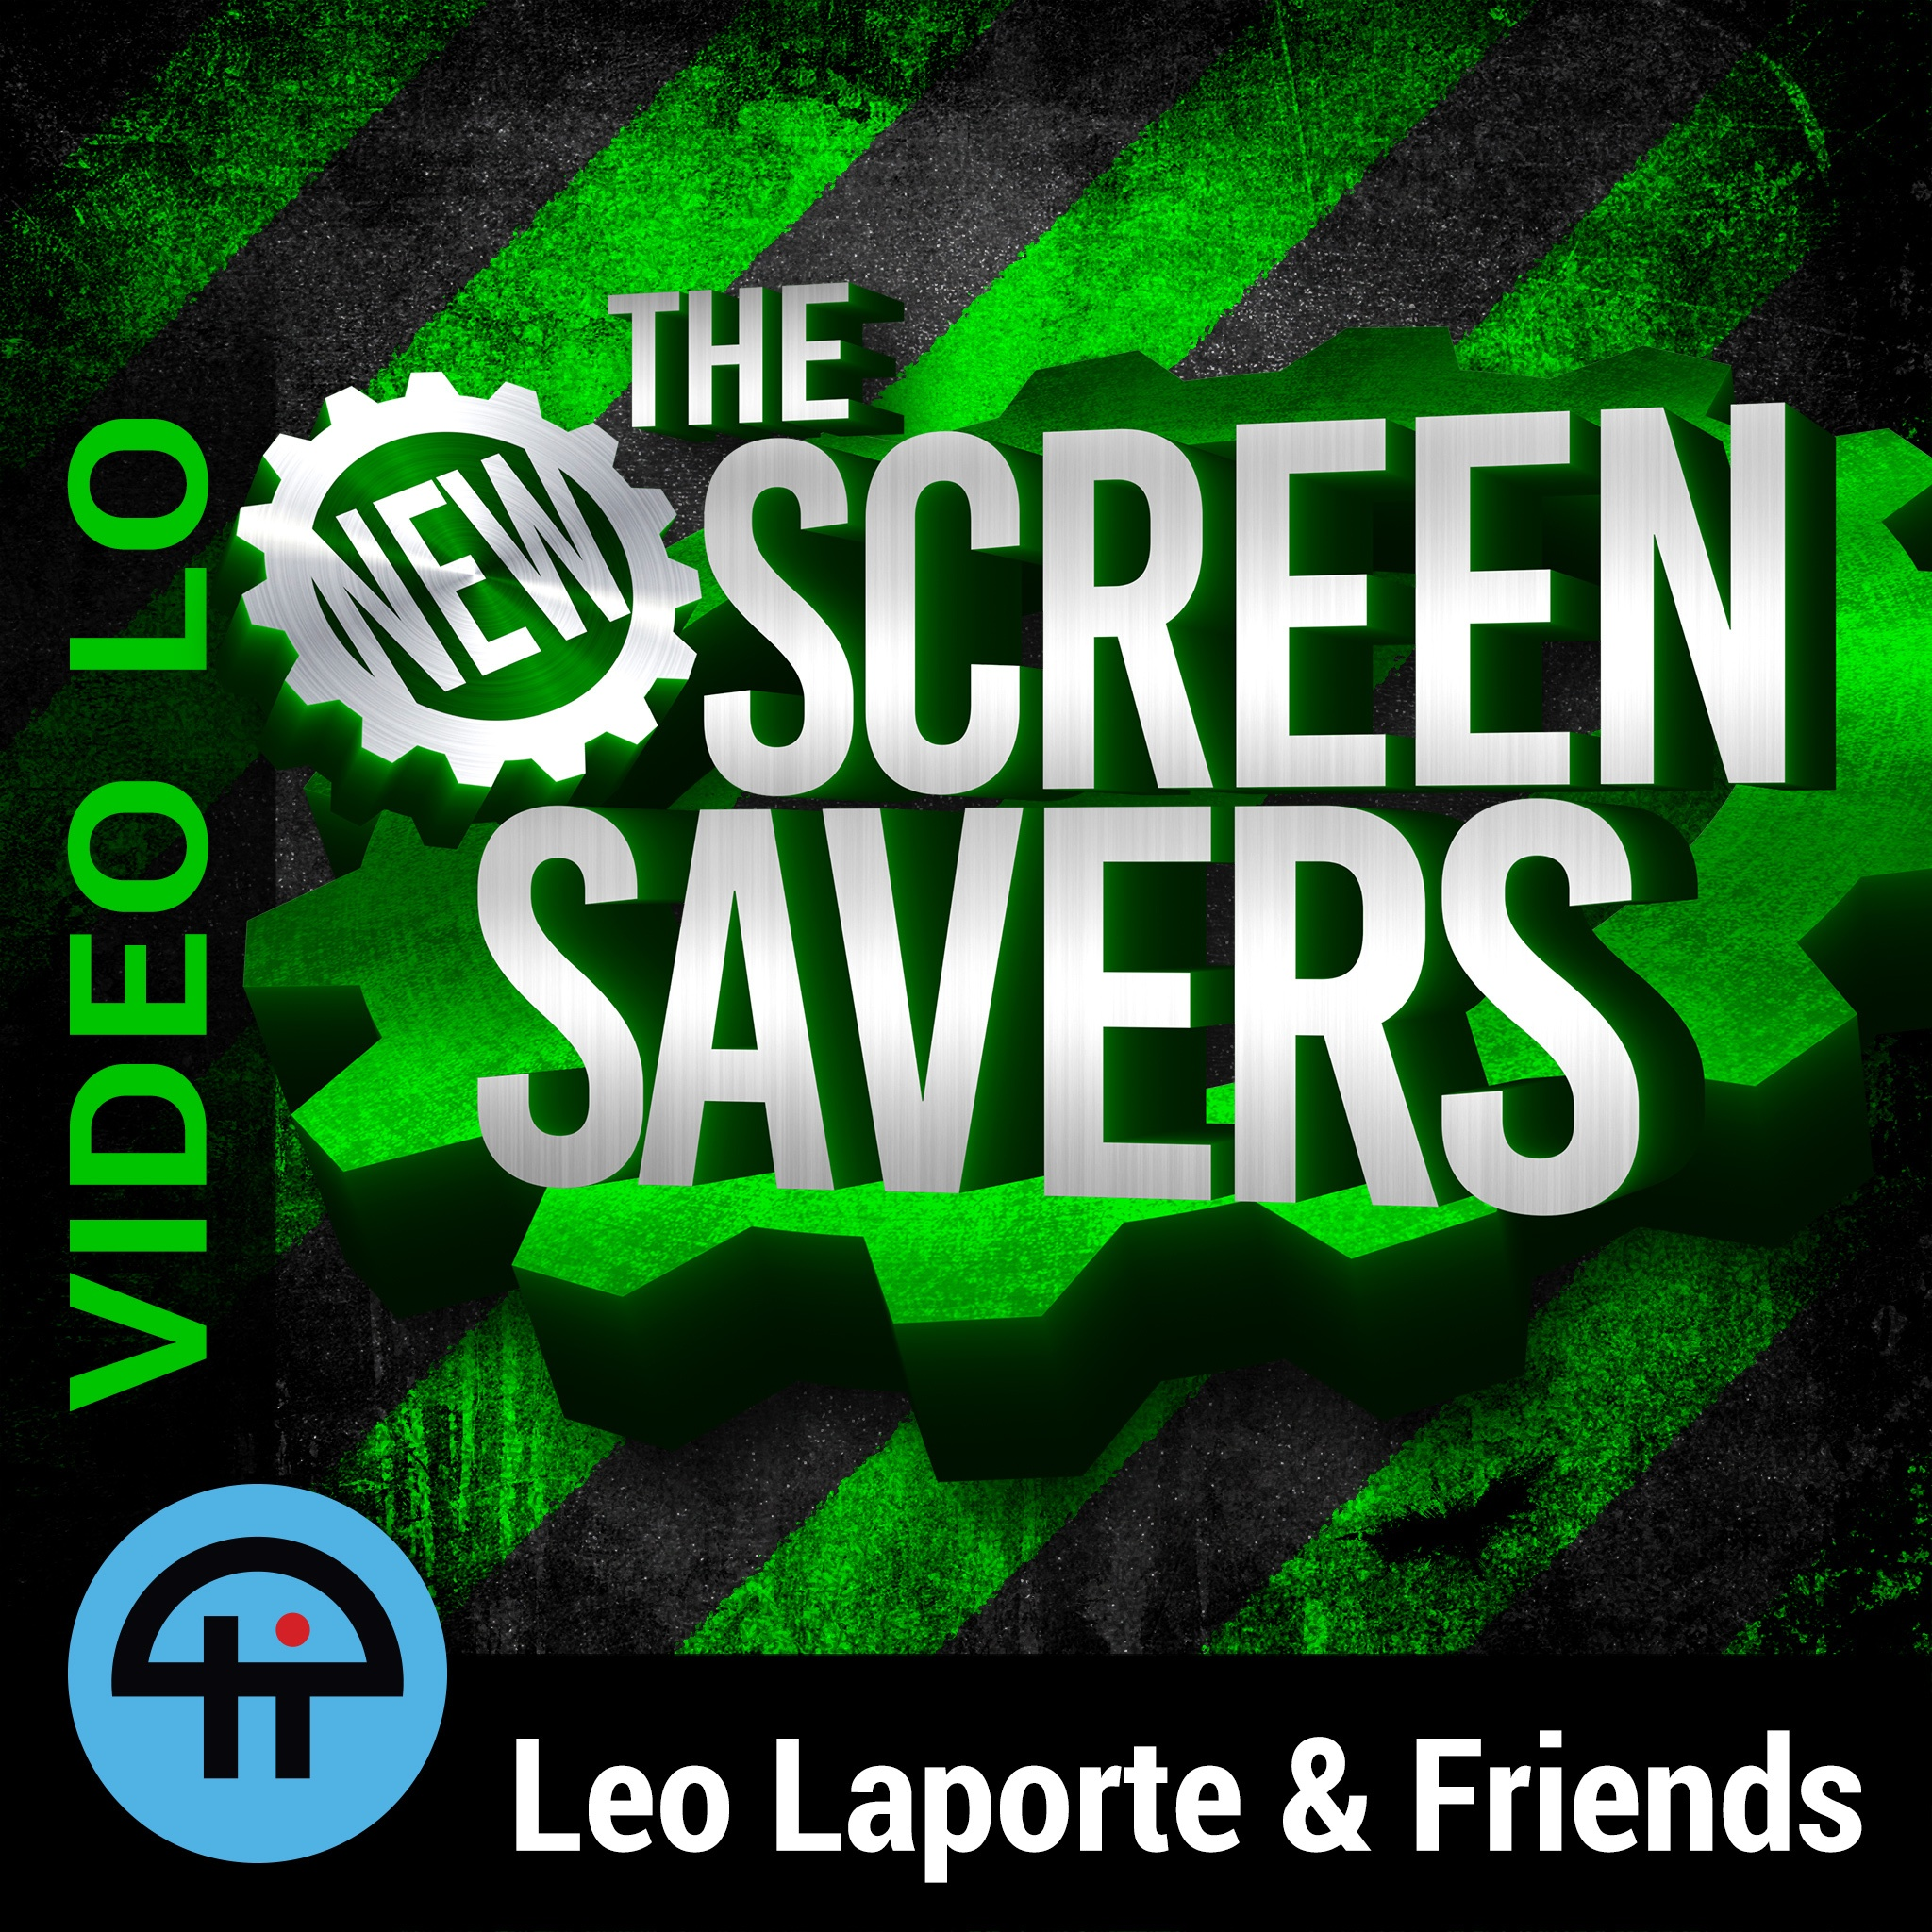 The New Screen Savers (Video-LO)